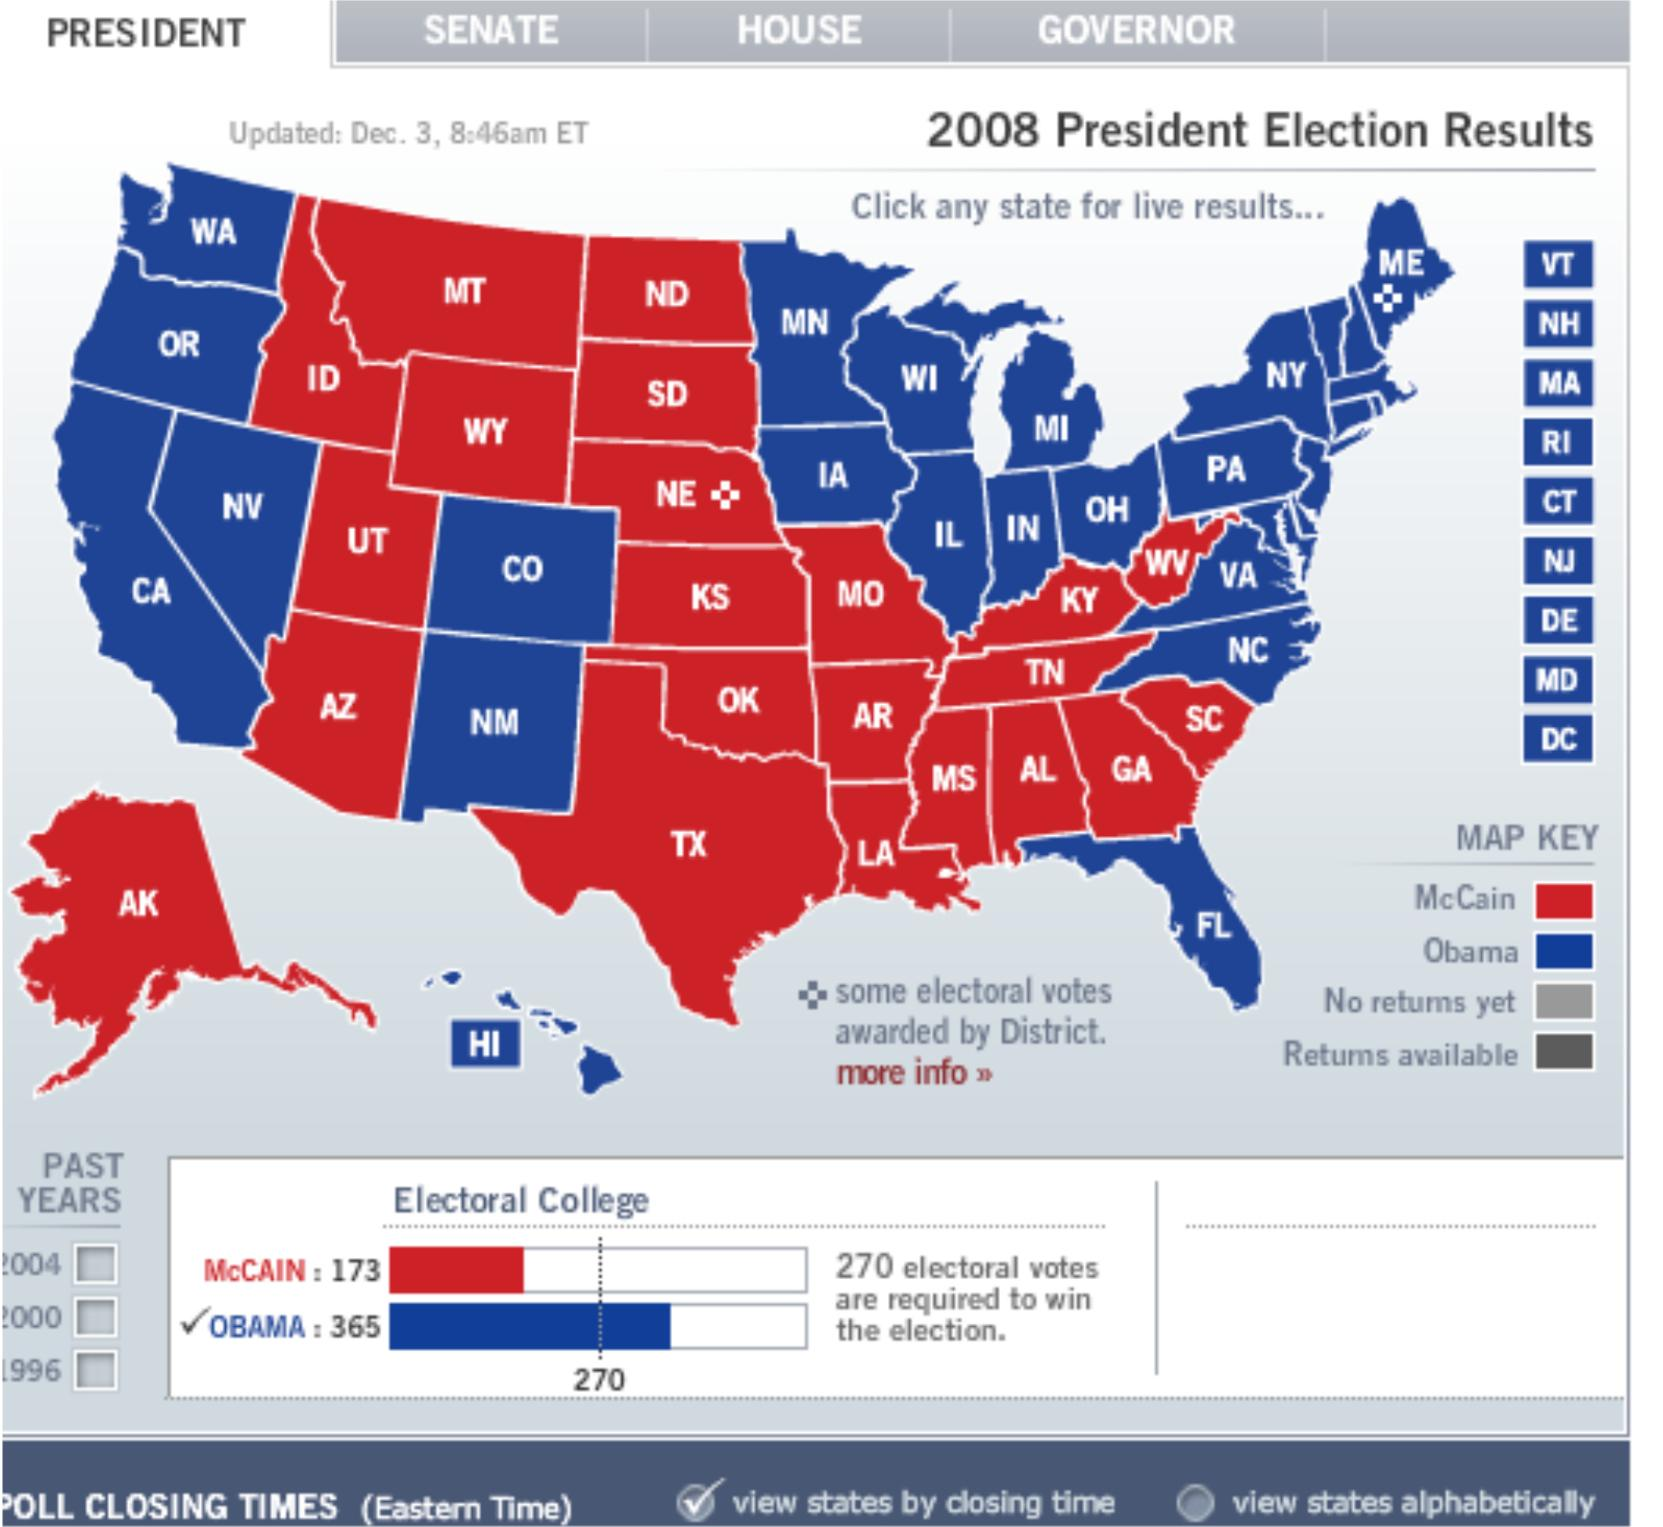 presidential election projections Use recent election results to get your 2016 prediction started states with split electoral votes are represented as purple, green, orange, or grey, depending on the split.